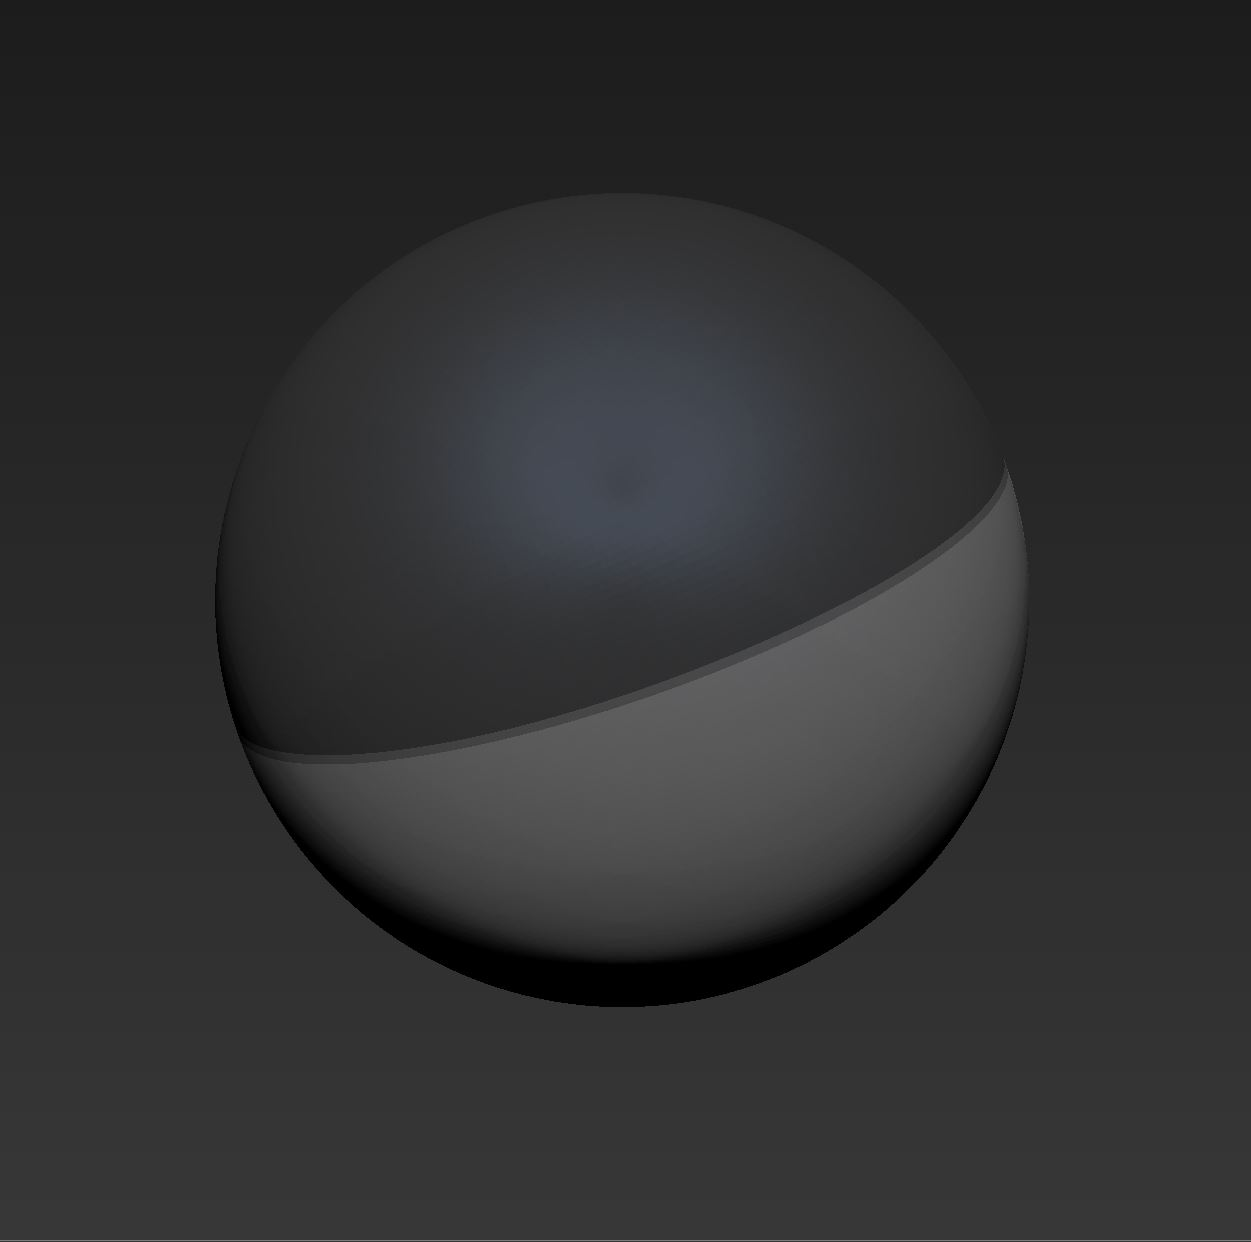 Masking a 3D sphere in Zbrush. Now let's find a Fibermesh preset for blades of grass.